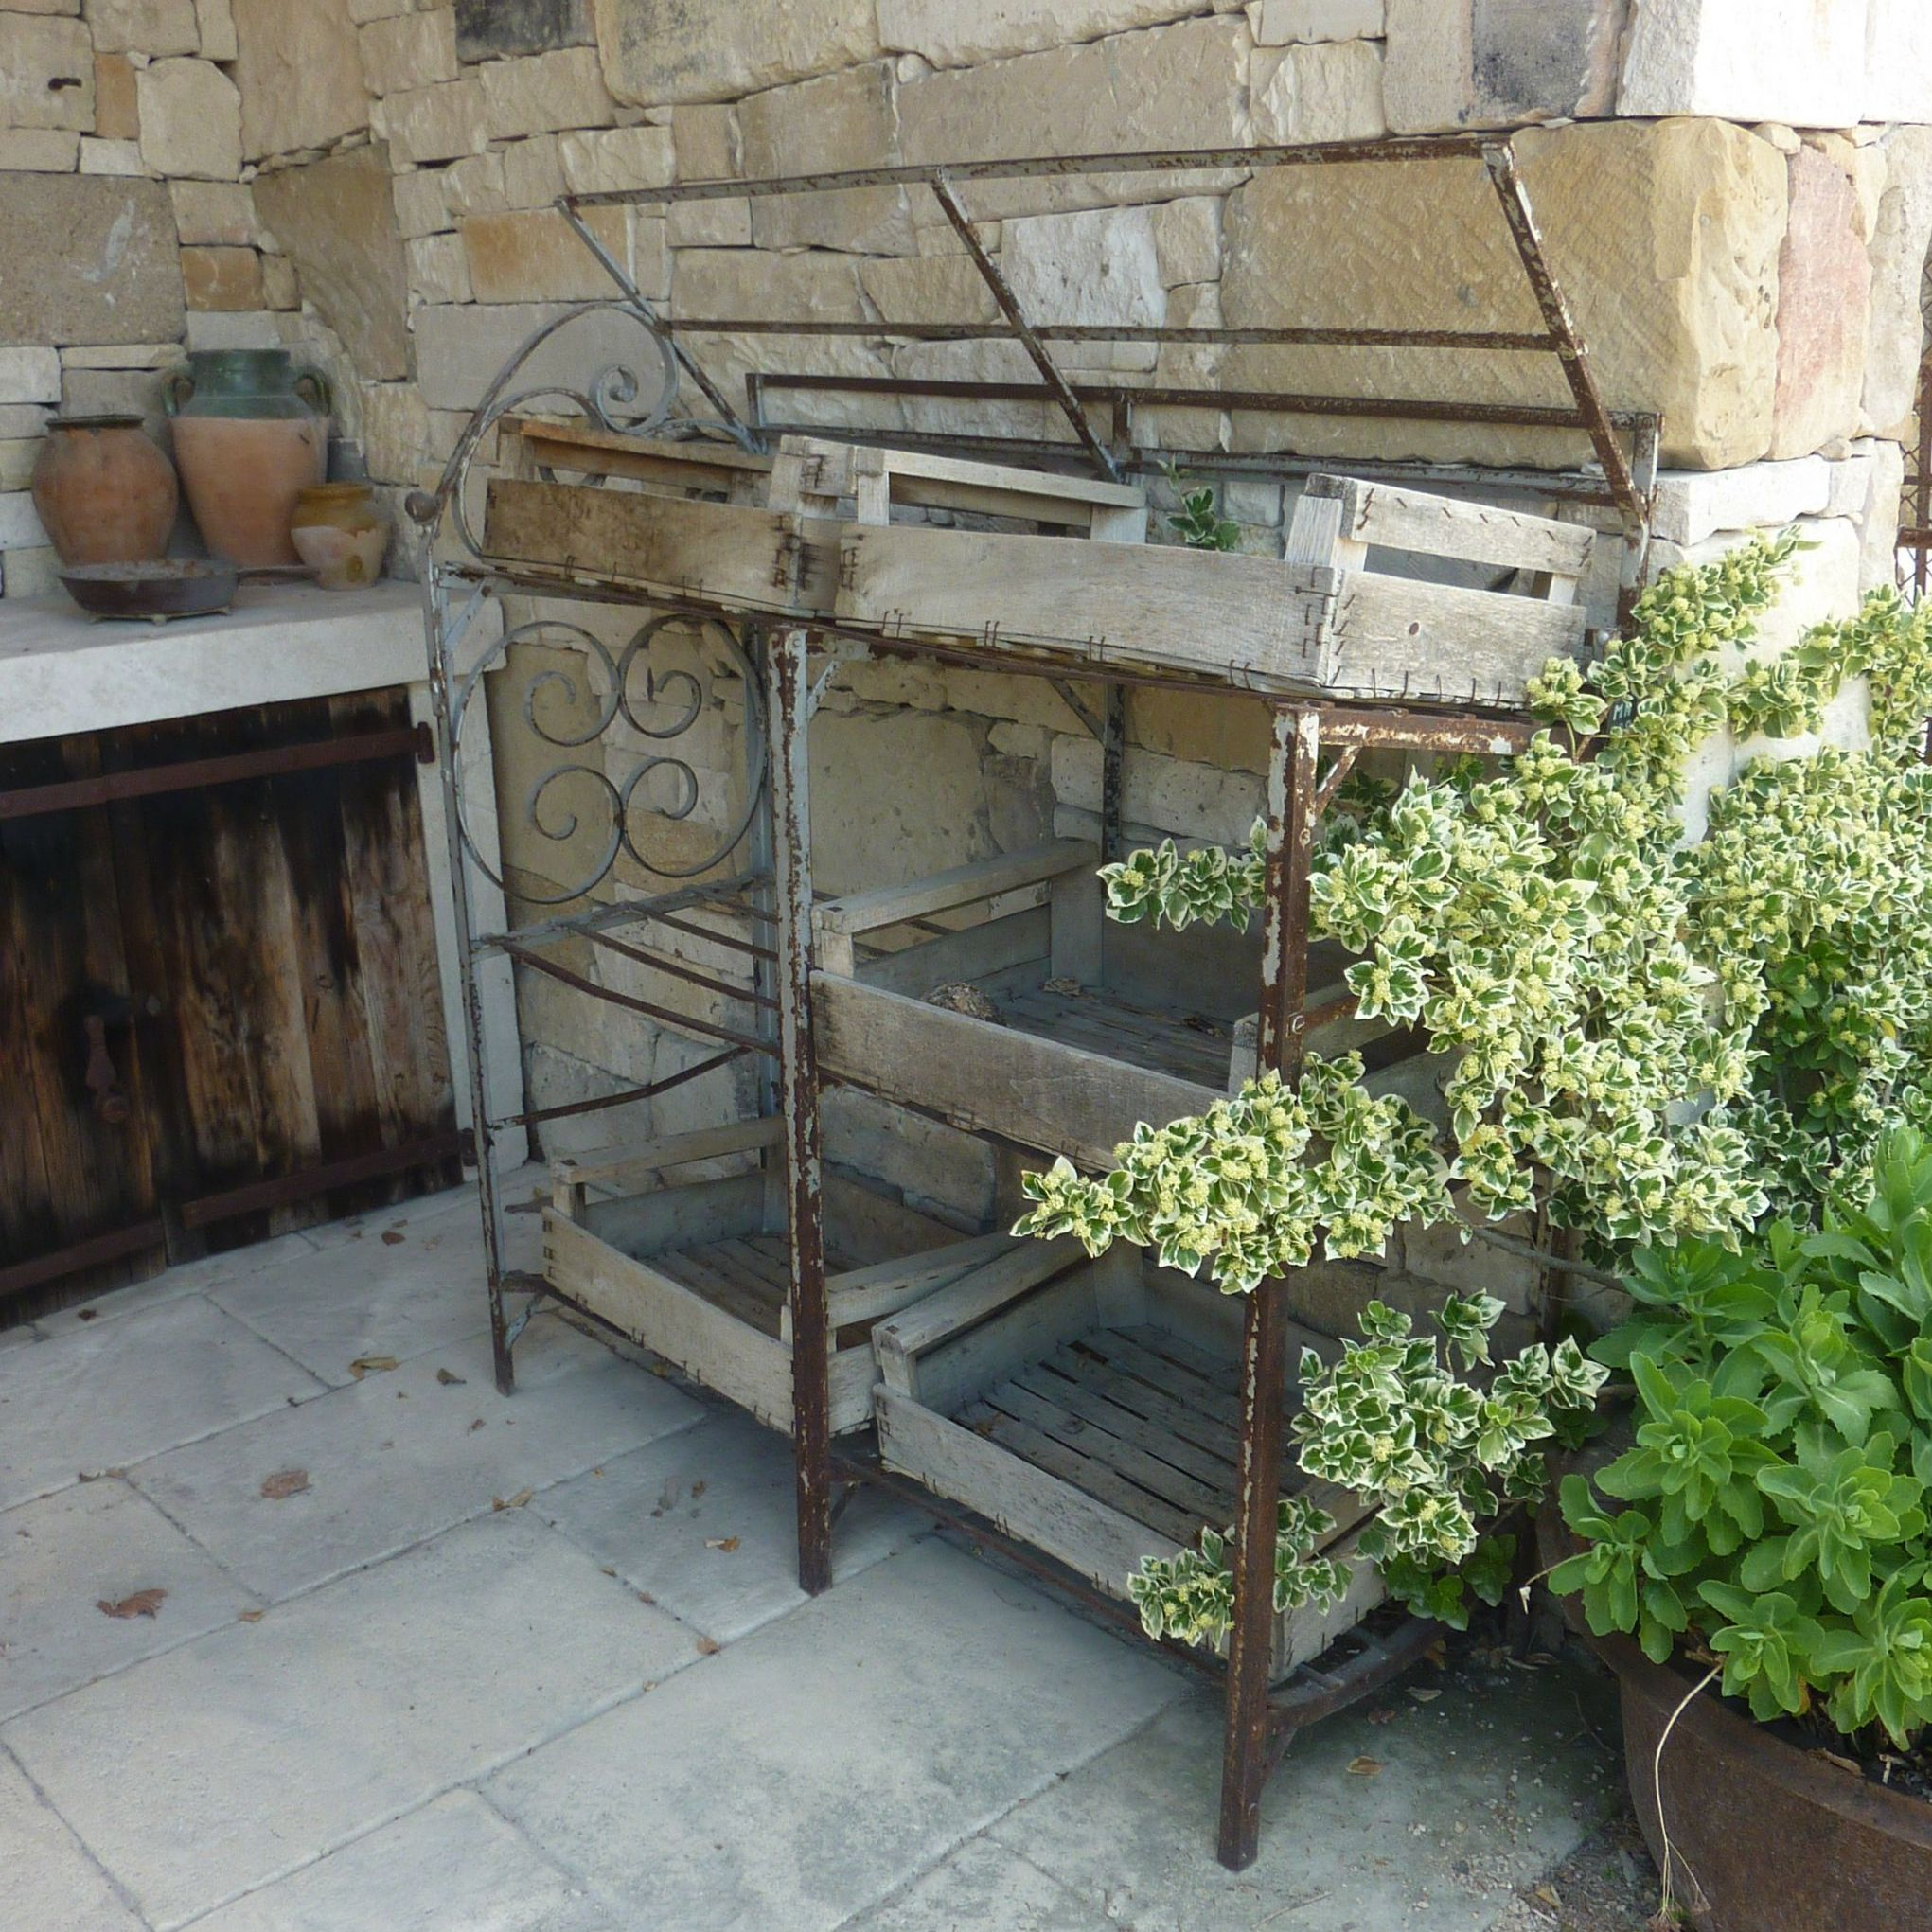 Wrought iron shelf - superb old wrought iron grid.